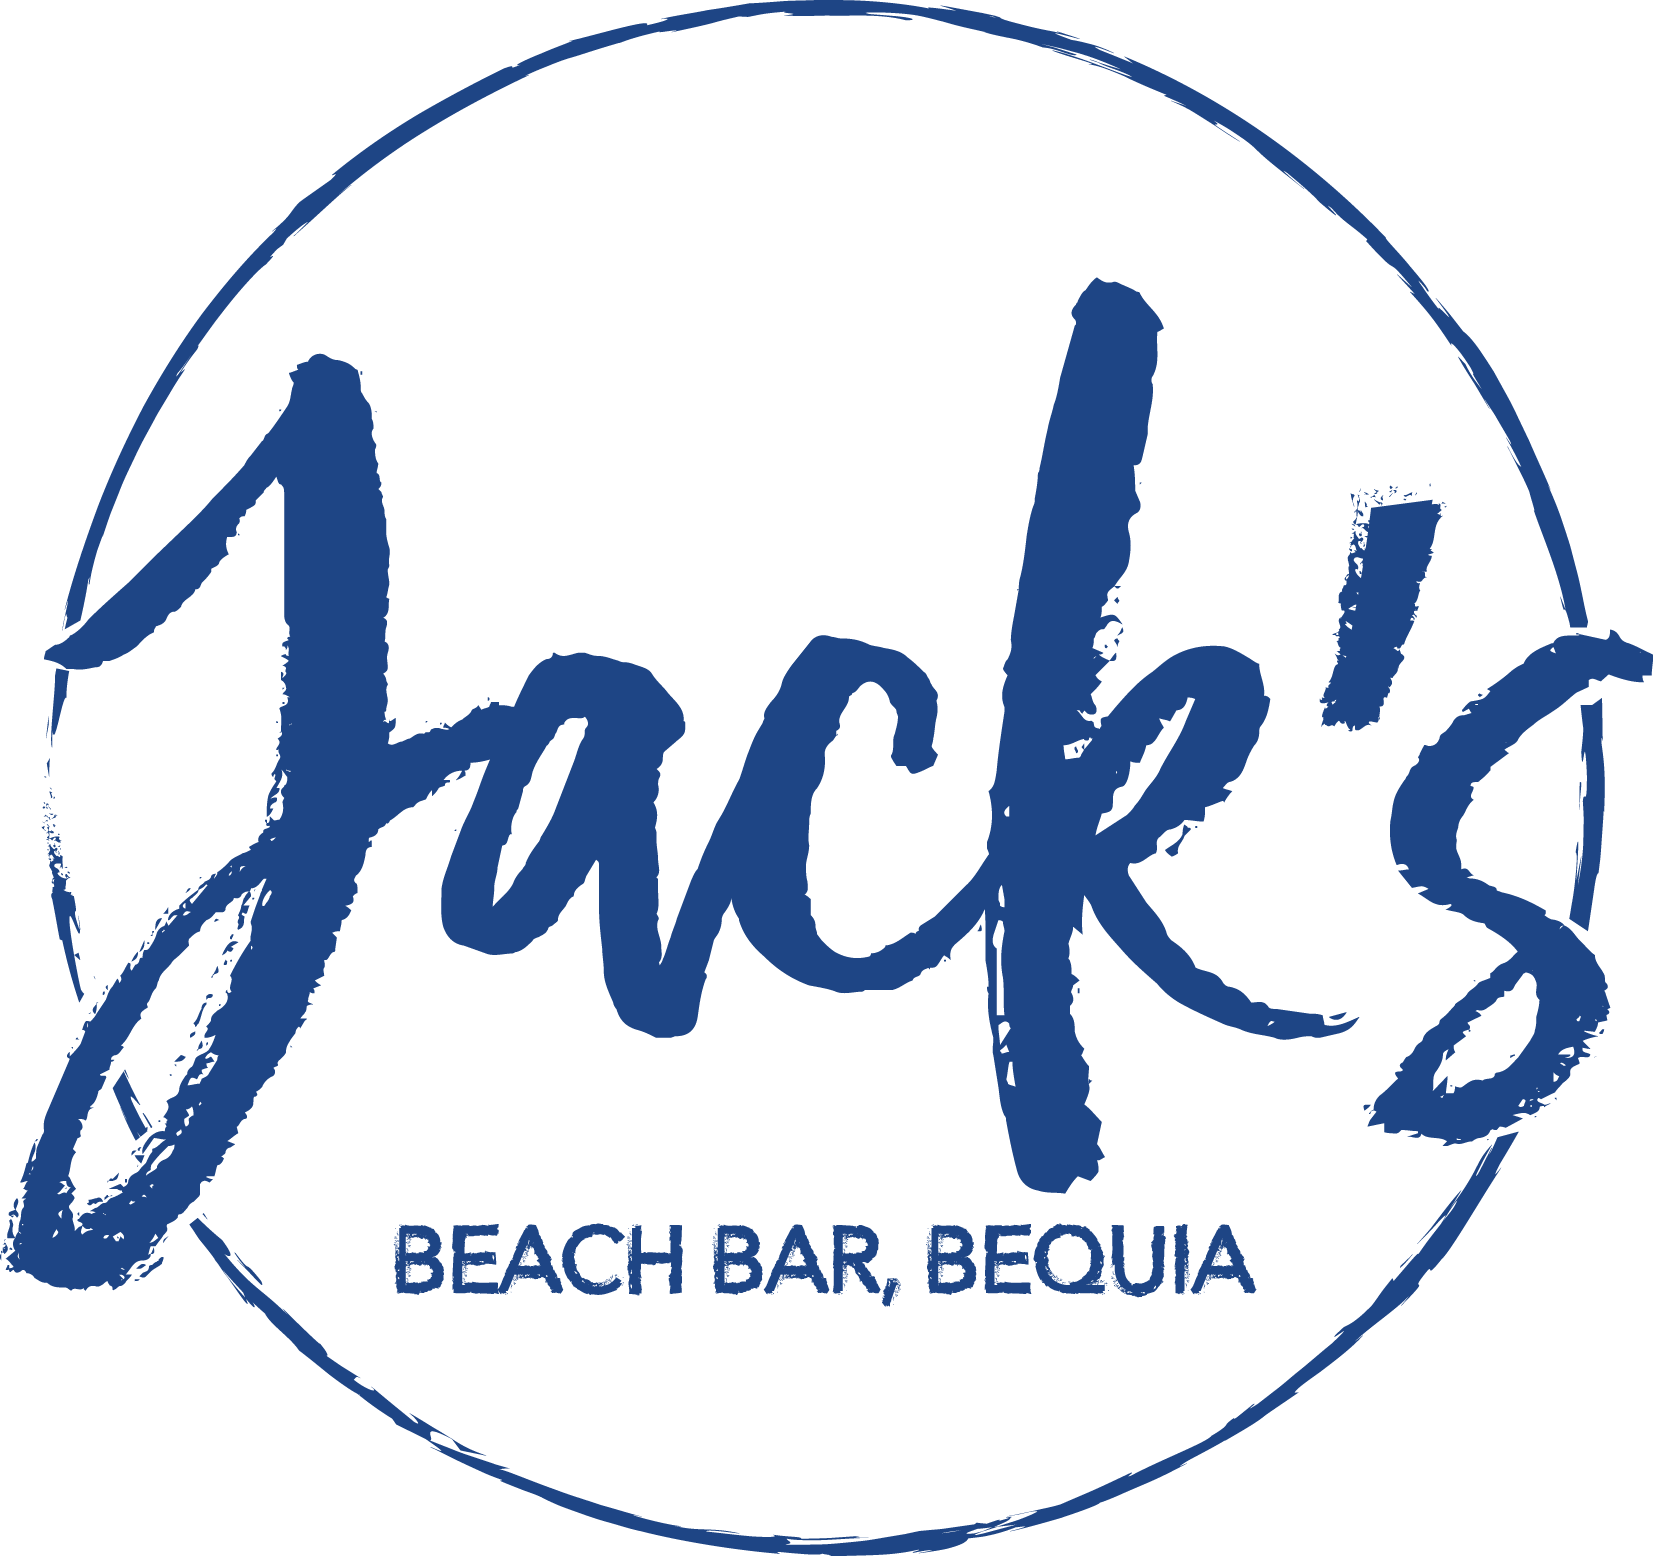 Jack's Beach Bar, Bequia